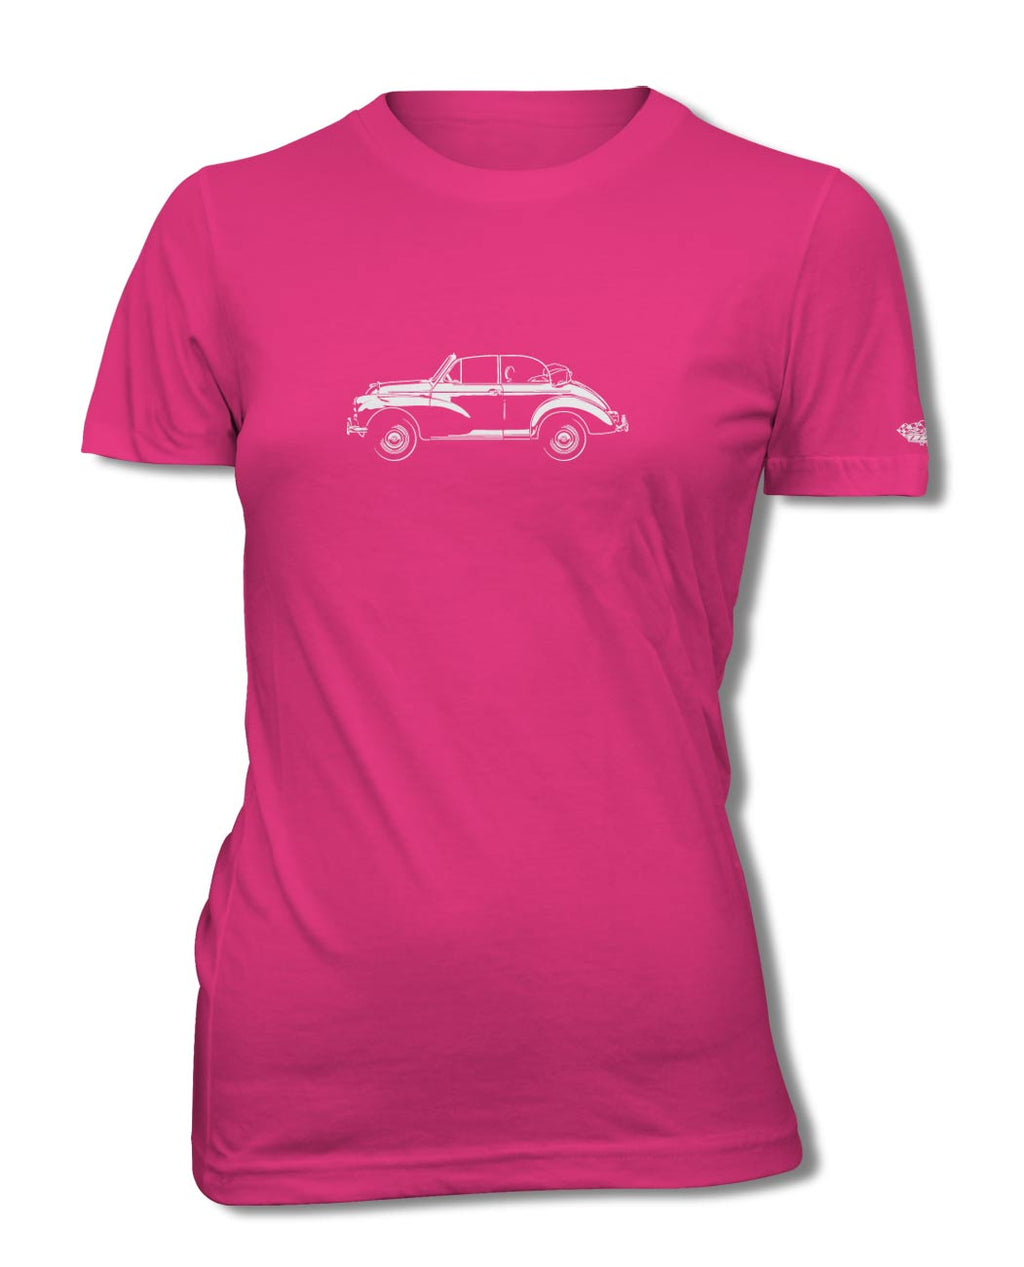 Morris Minor Tourer Convertible T-Shirt - Women - Side View